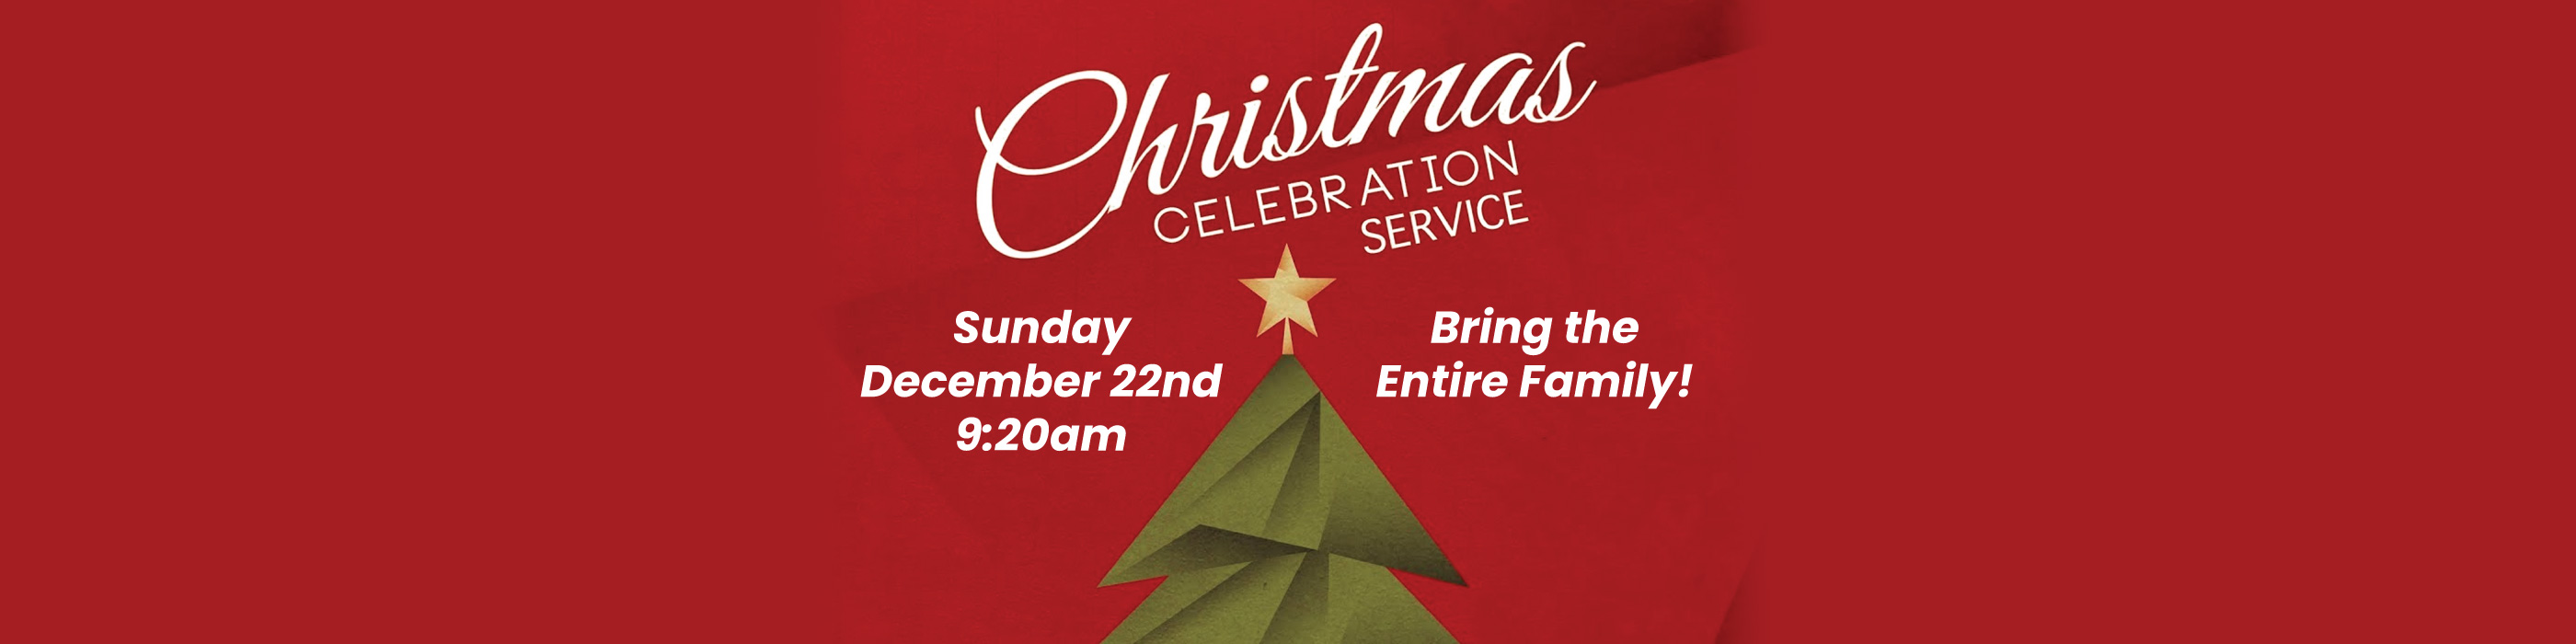 Summit-Christmas-Service-122219-WEB-2800x700